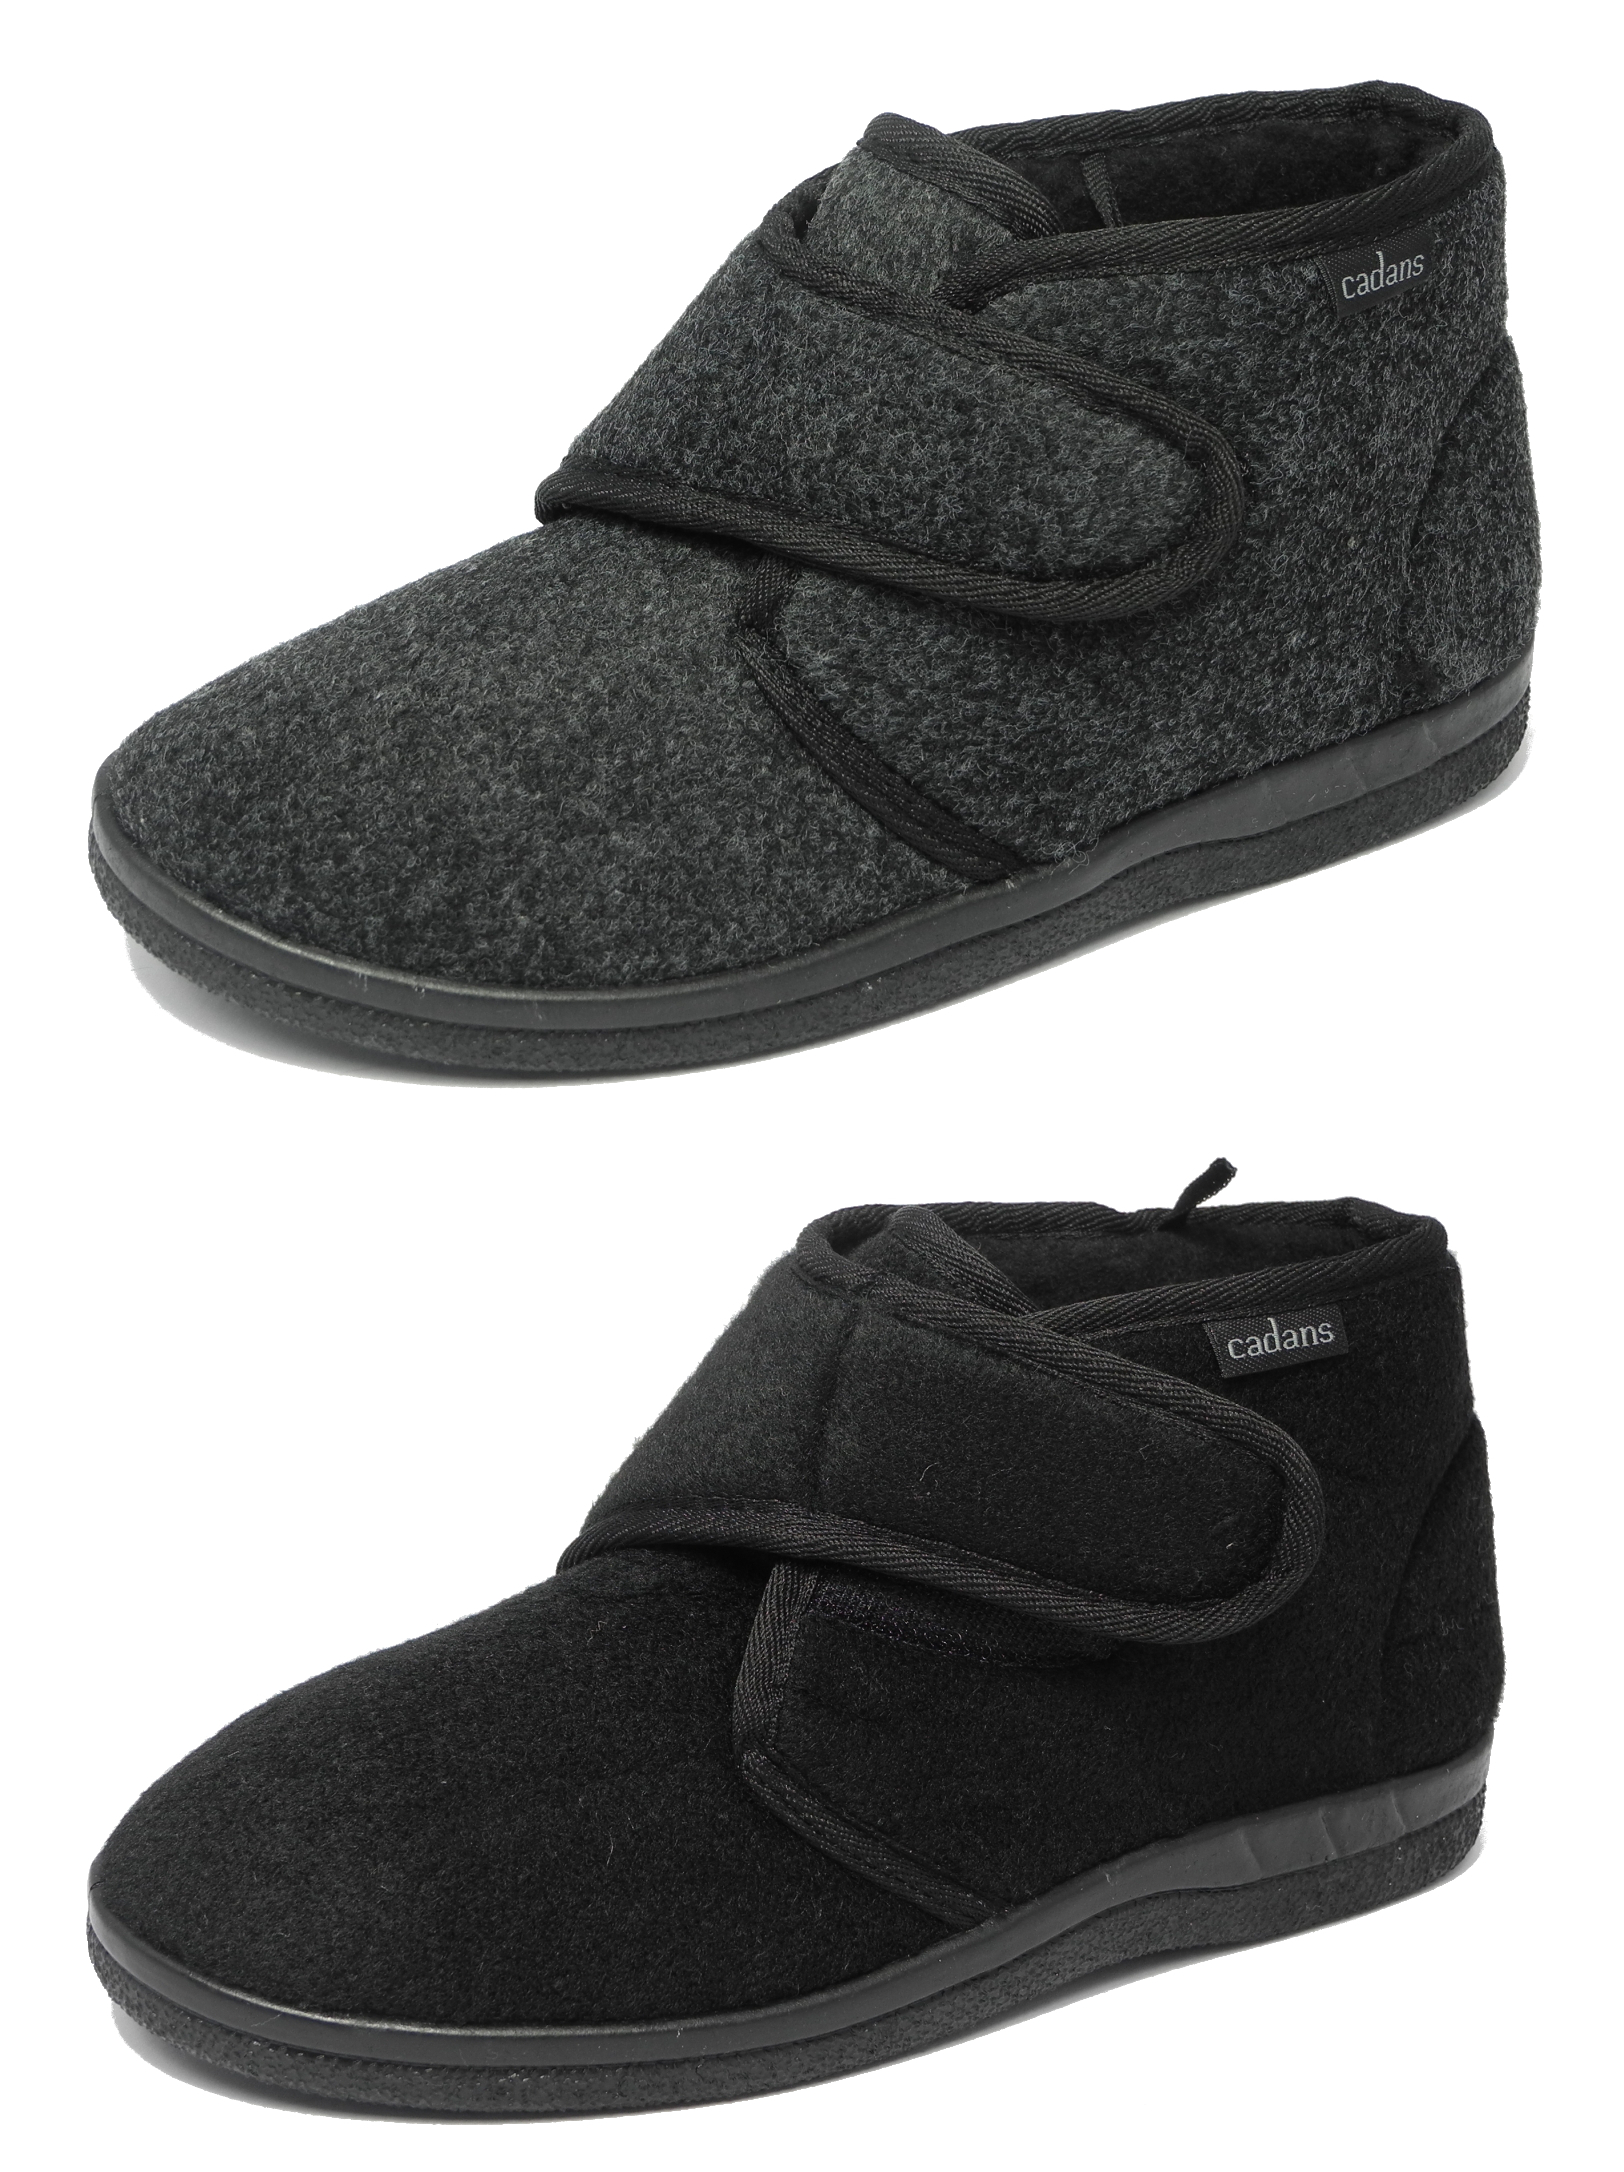 Men's Slippers - Warmth and comfort with men's slippers. Choose from a variety of slippers for men, including men's sheepskin lined slippers, leather slippers, pile-lined slippers and scuff truexfilepv.cf from name brands like: UGG, The North Face, .